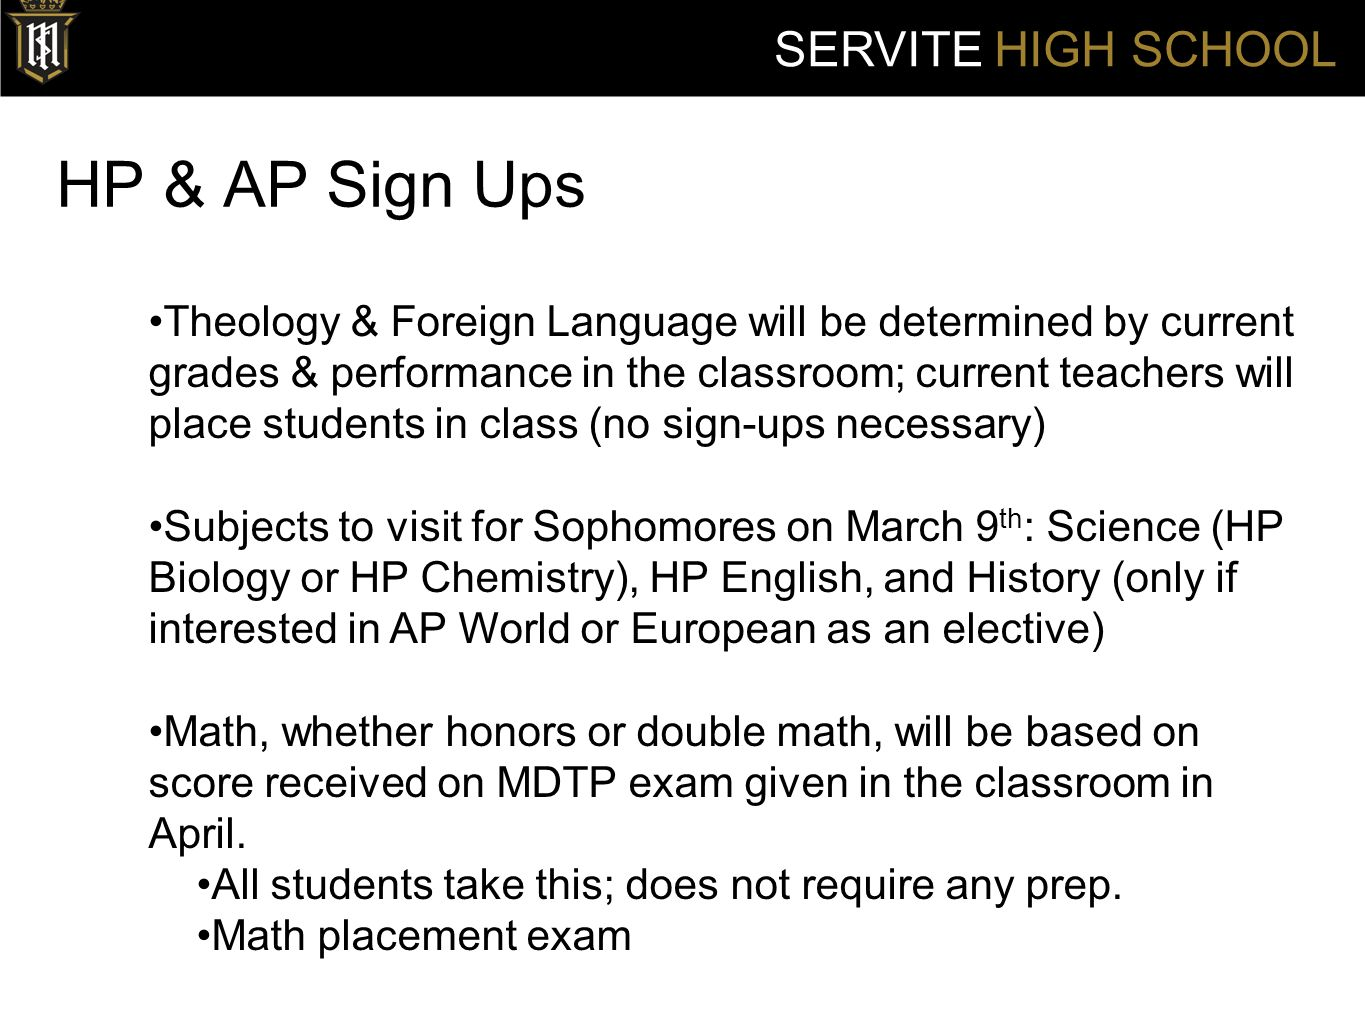 HP & AP Sign Ups SERVITE HIGH SCHOOL Theology & Foreign Language will be determined by current grades & performance in the classroom; current teachers will place students in class (no sign-ups necessary) Subjects to visit for Sophomores on March 9 th : Science (HP Biology or HP Chemistry), HP English, and History (only if interested in AP World or European as an elective) Math, whether honors or double math, will be based on score received on MDTP exam given in the classroom in April.